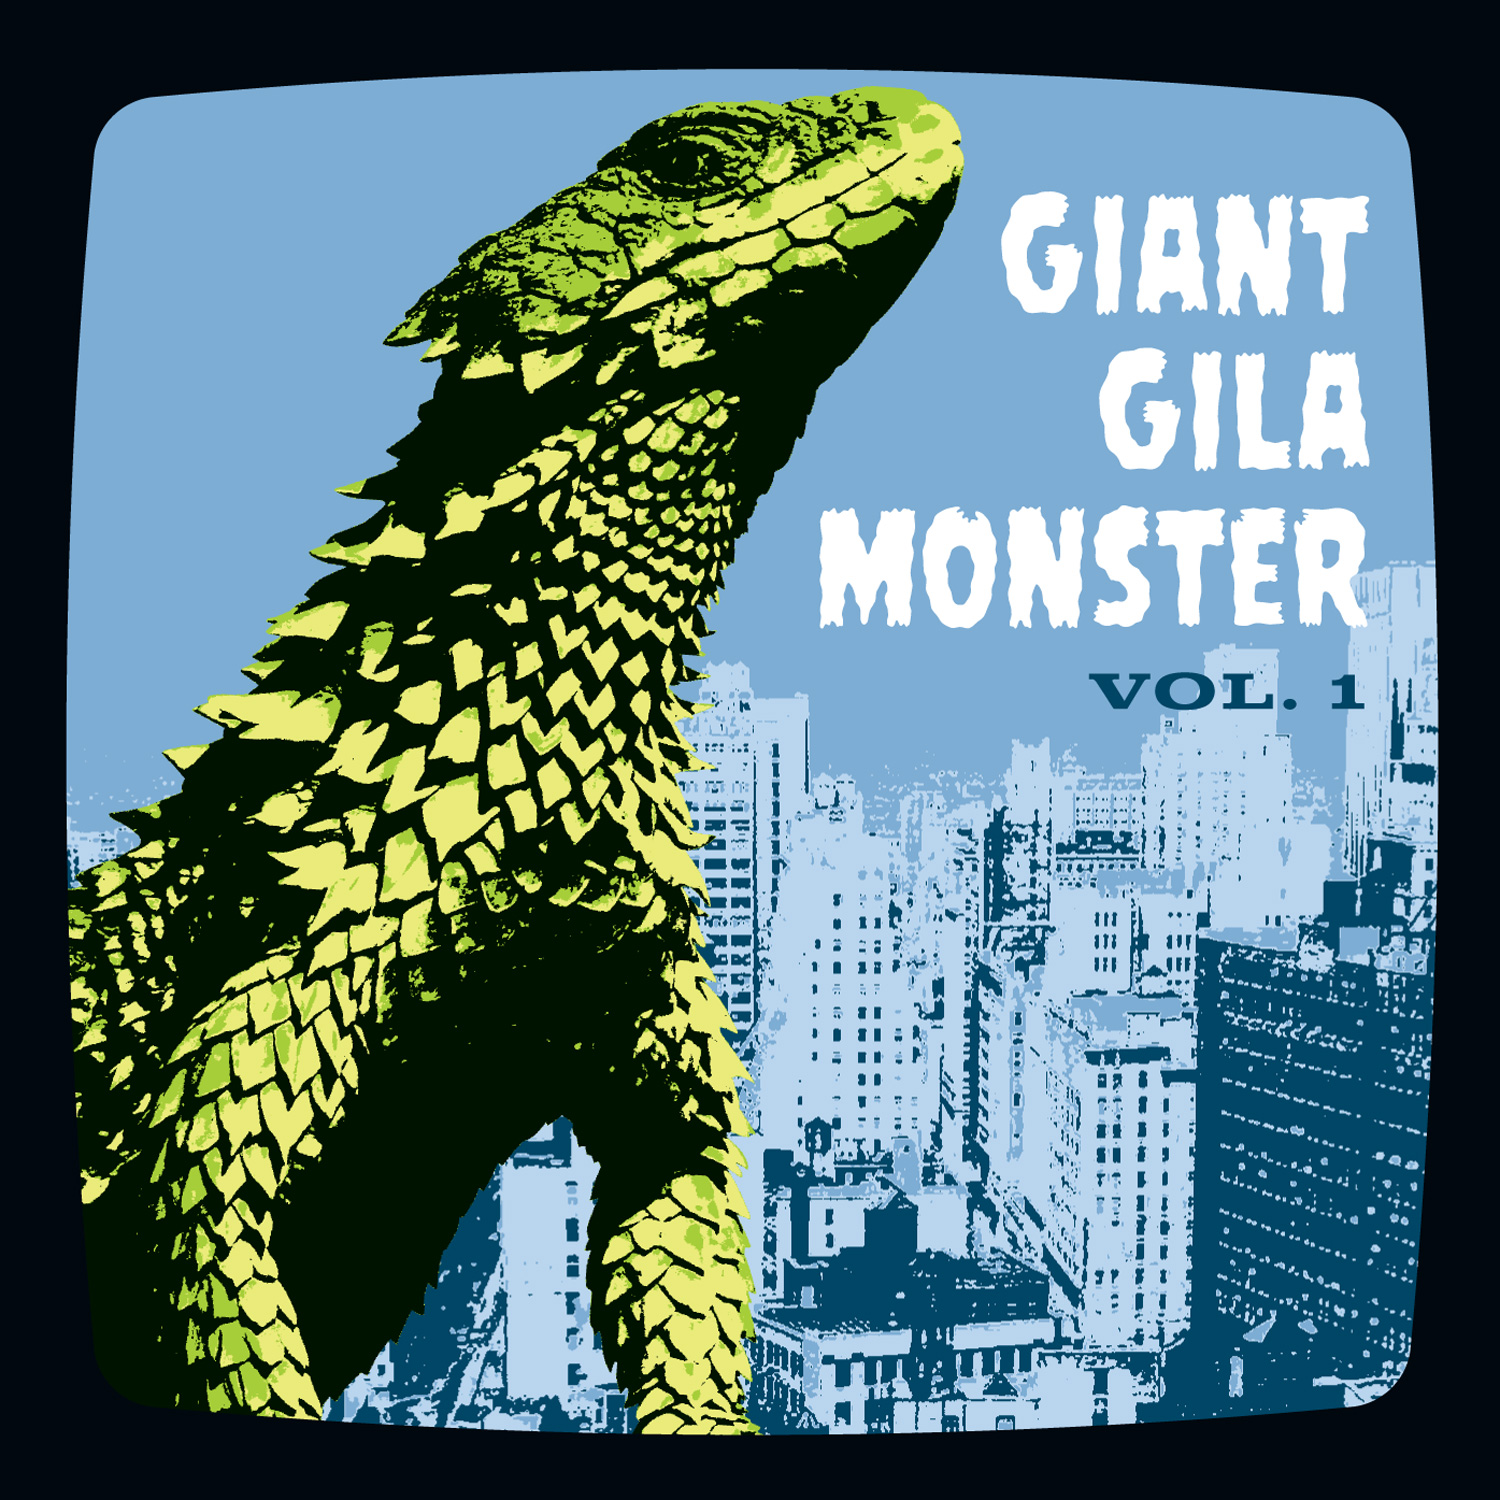 Giant Gila Monster, Vol. 1 45 sleeve